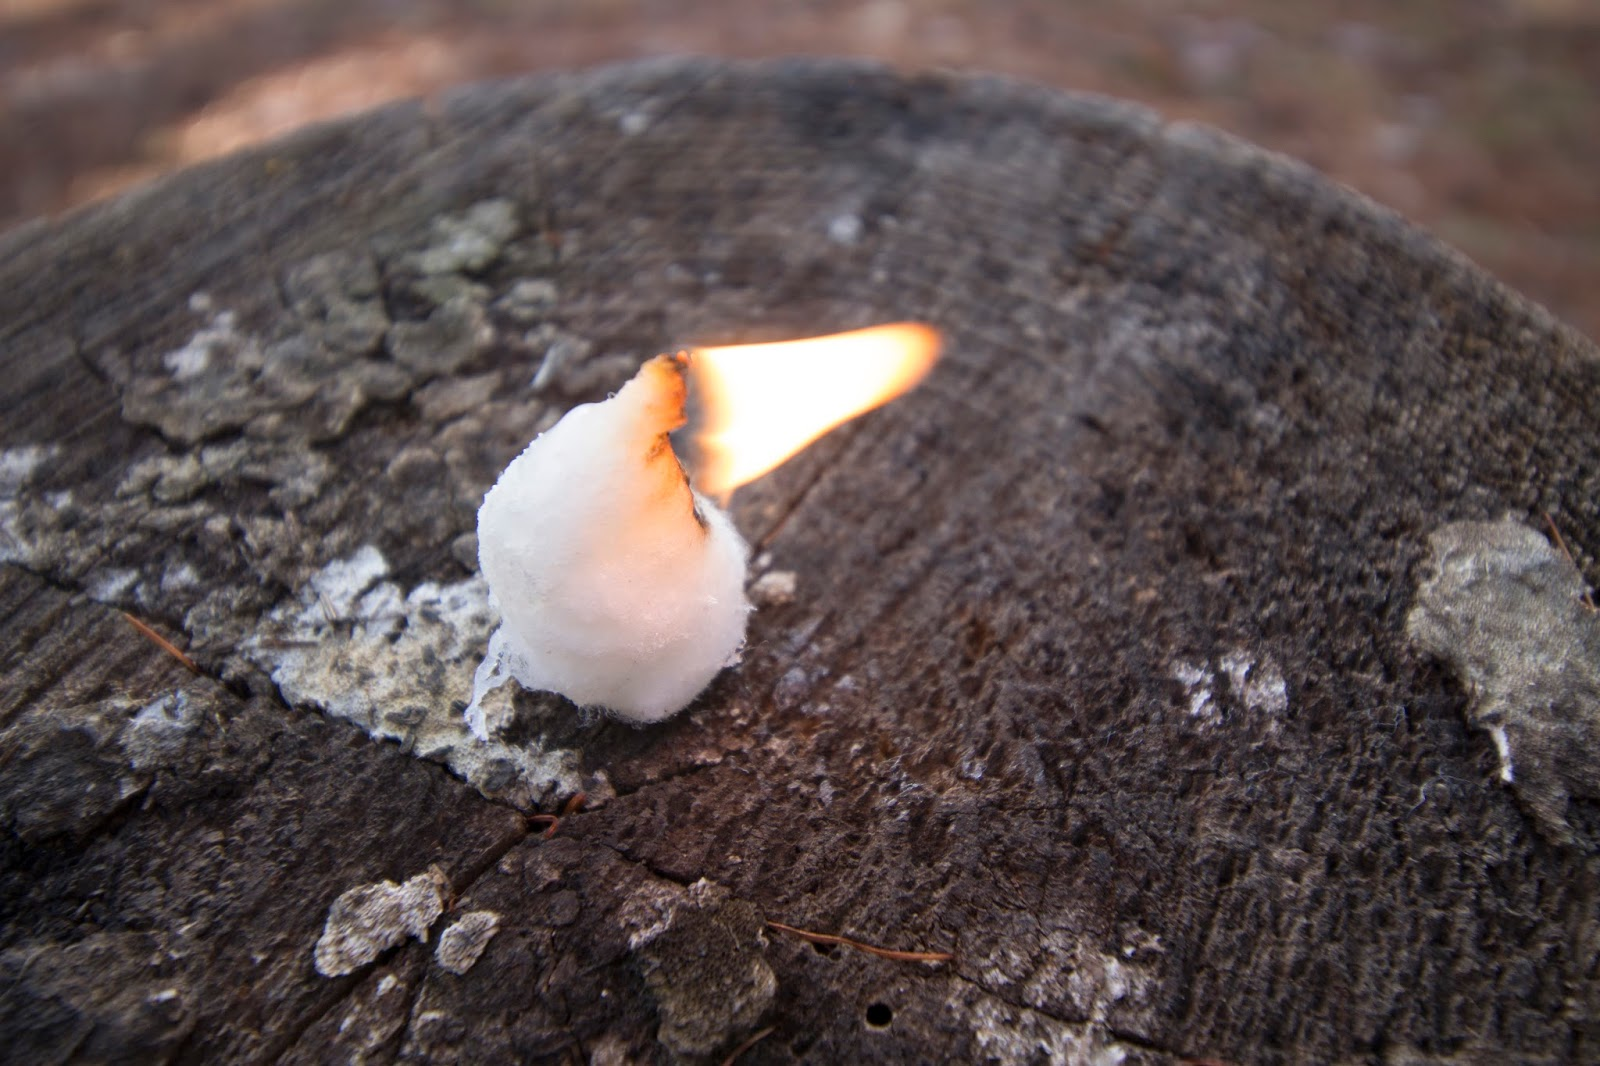 Cotton ball burns slow now